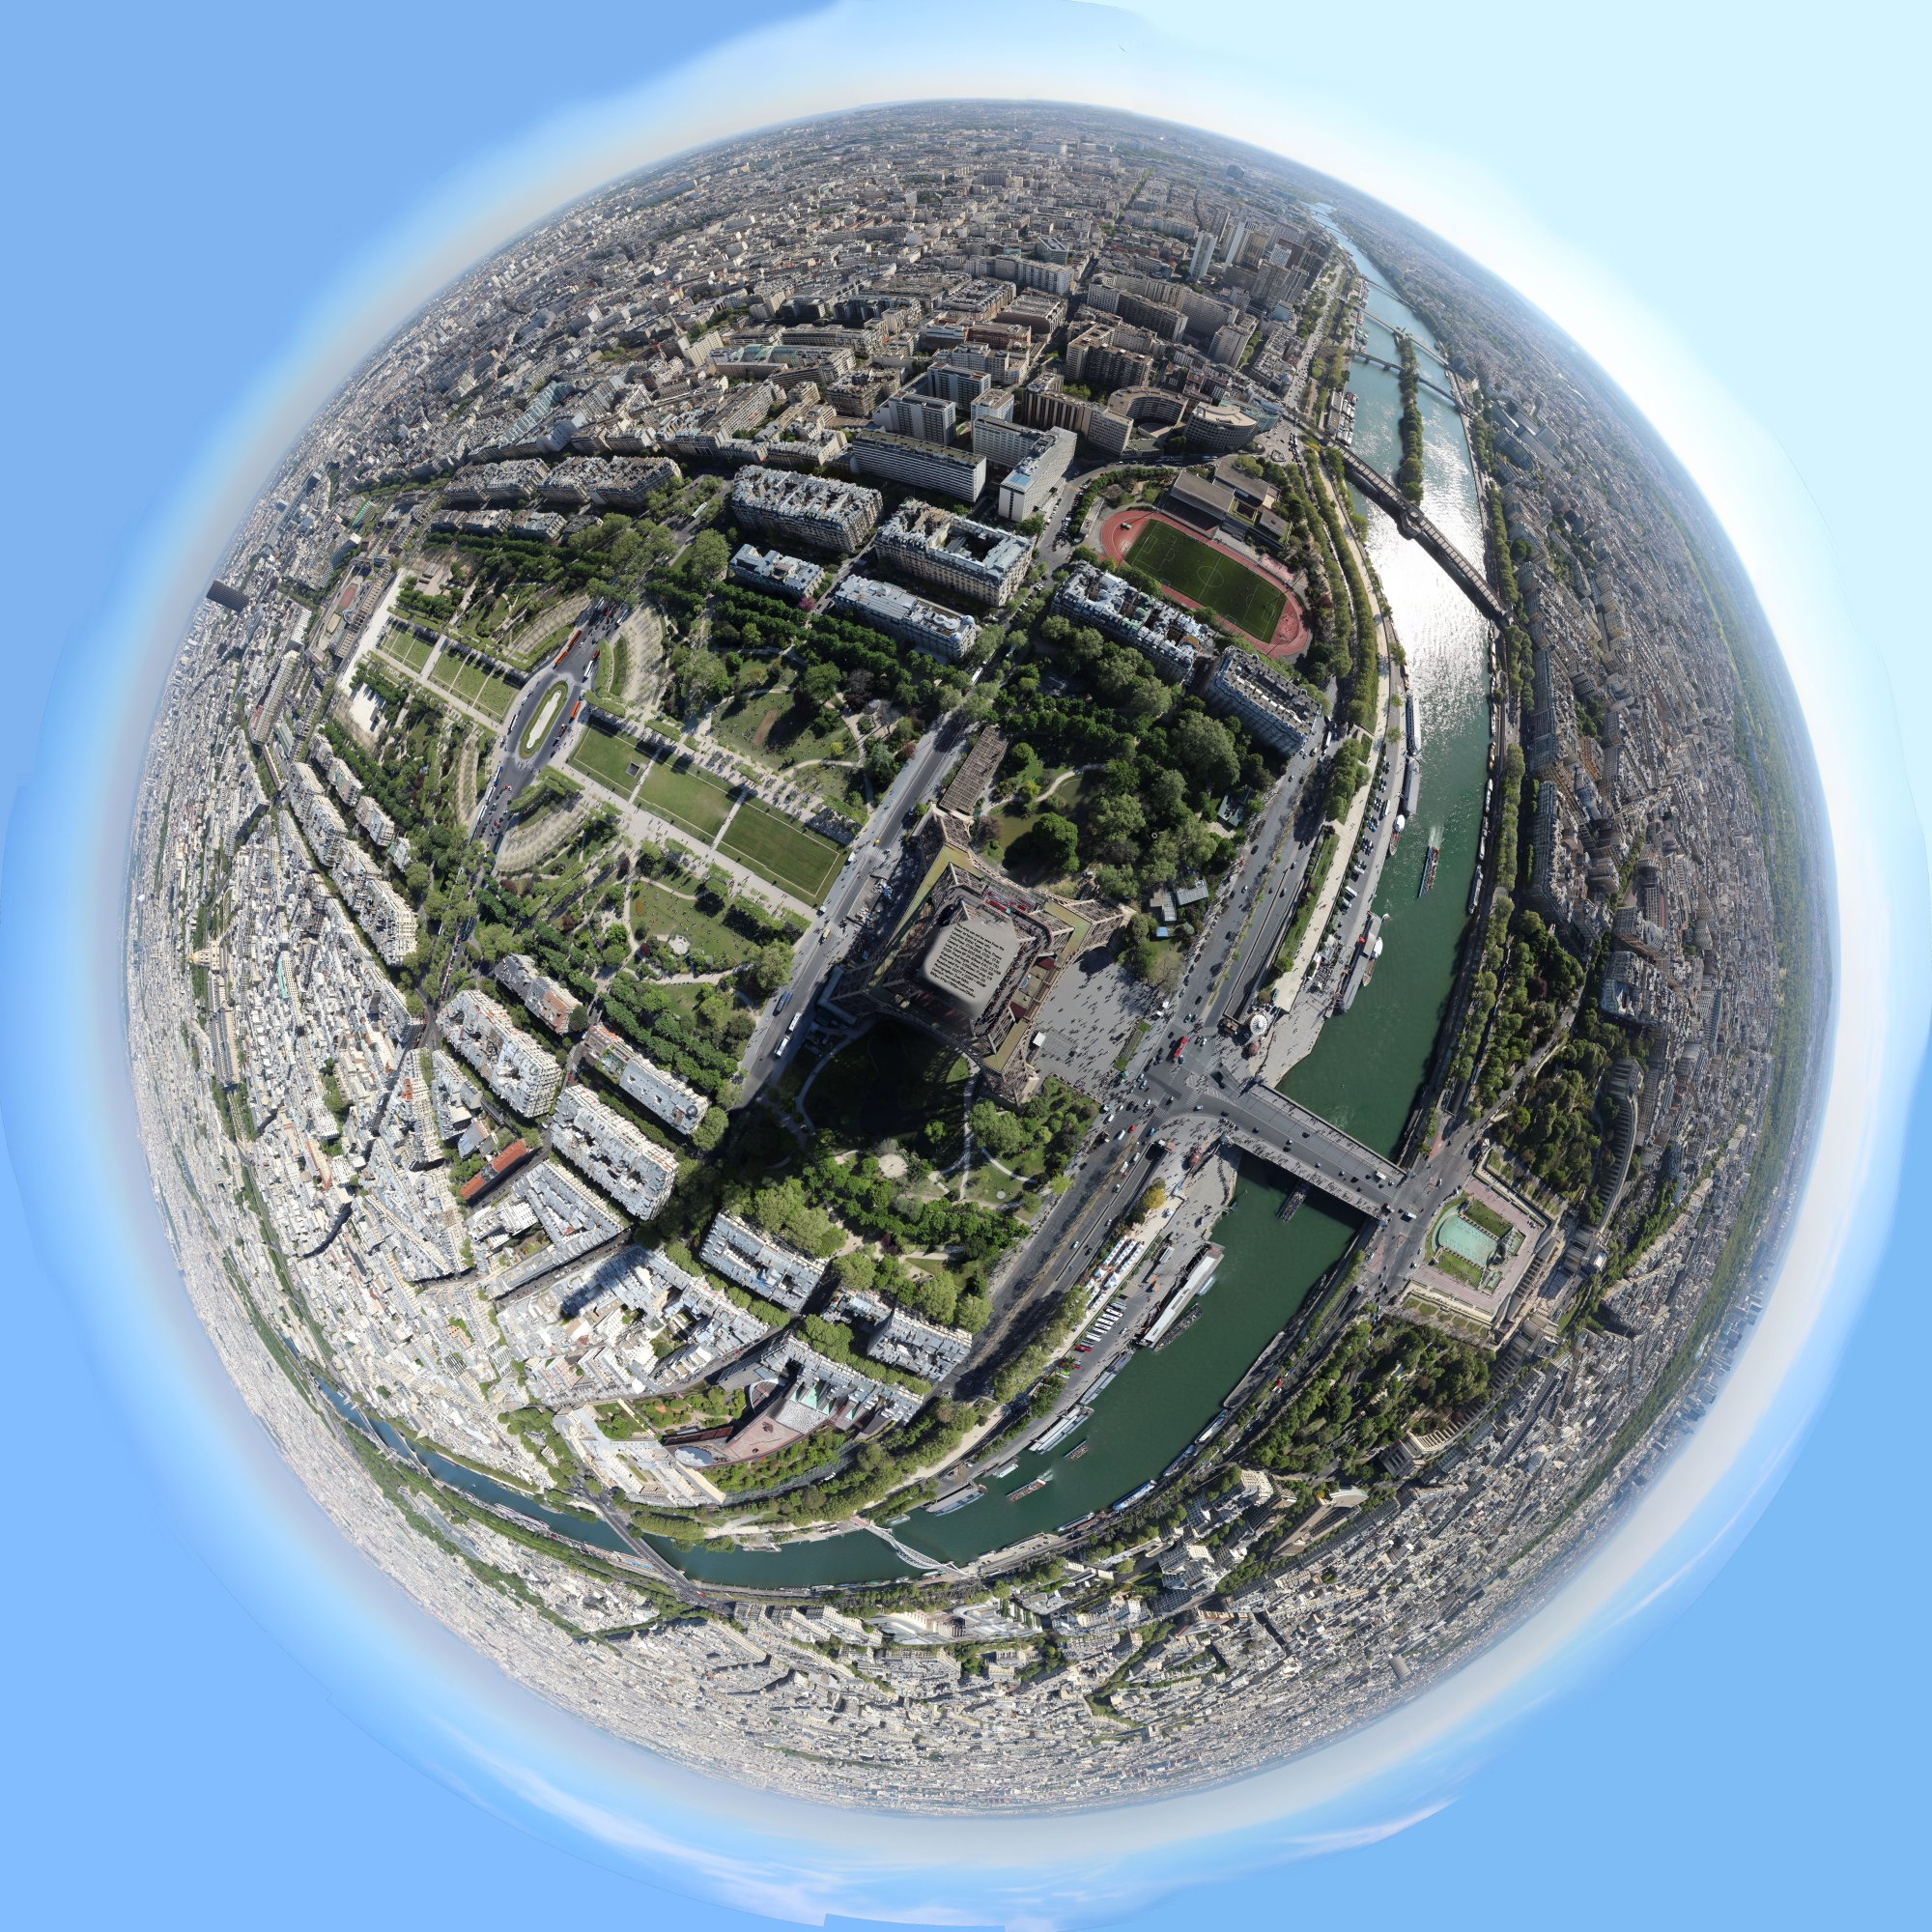 Eiffel Tower View Planet Panorama